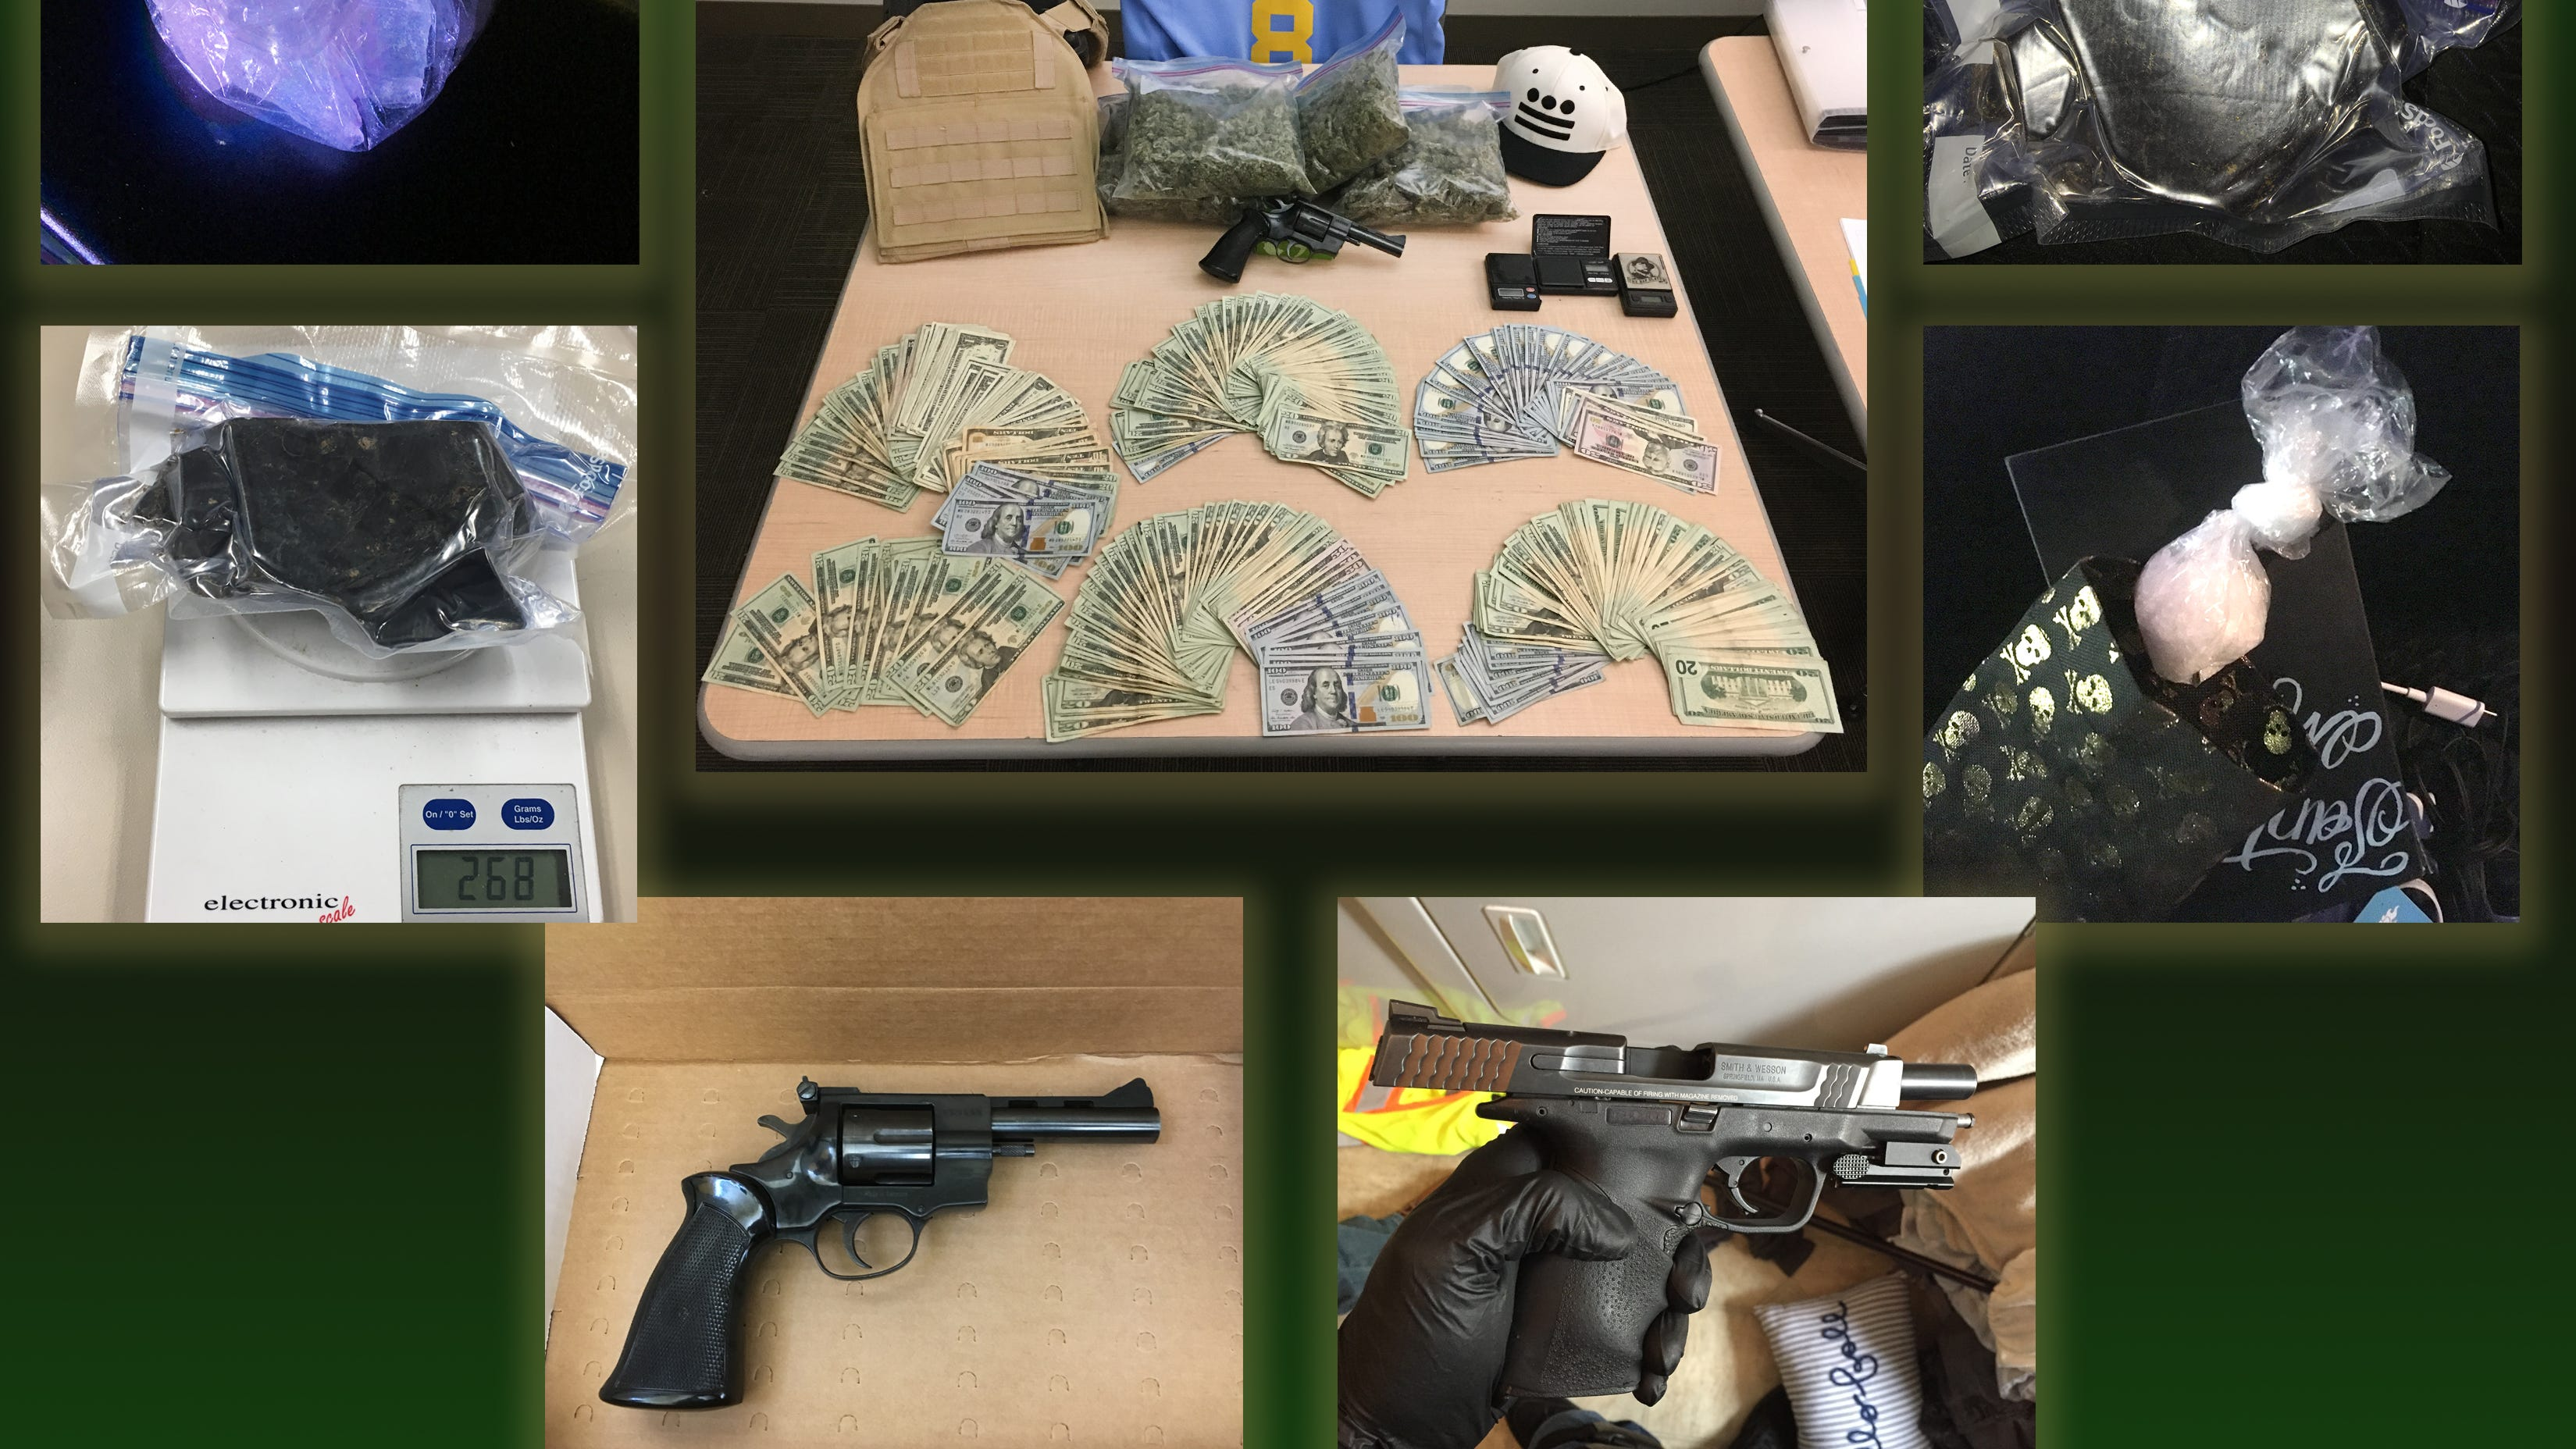 Ventura County Sheriff's investigators seized heroin, methamphetamine, cocaine, guns, ammunition and cash last week when busting up an alleged drug trafficking organization being run from prison.